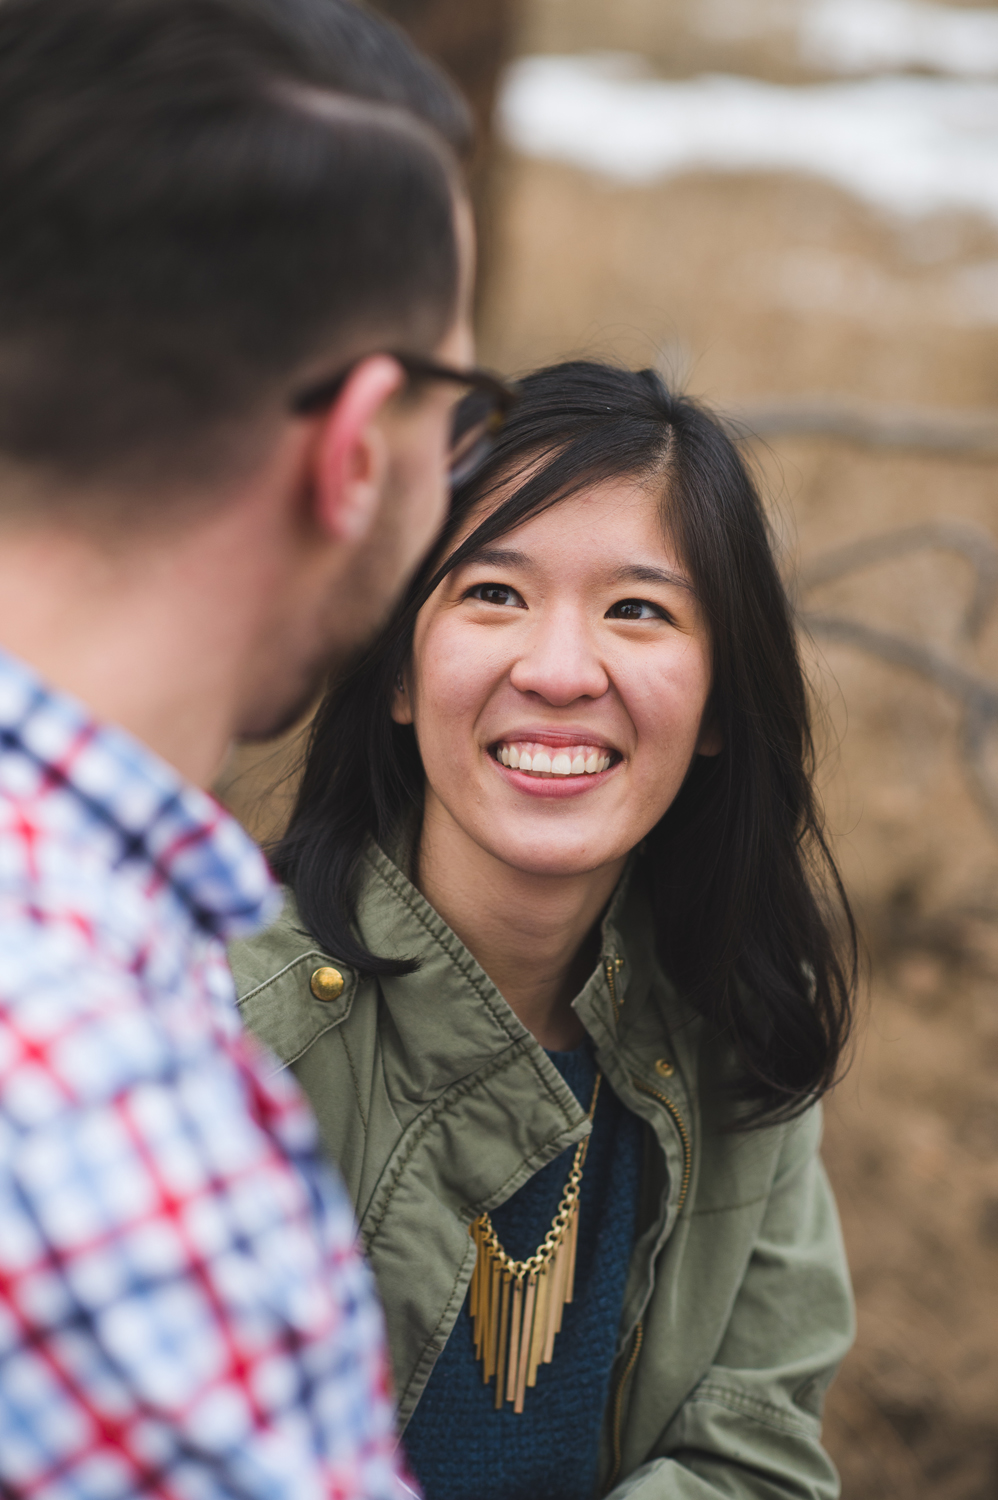 TiffanyandMark_Engaged_0472_squarespace.jpg